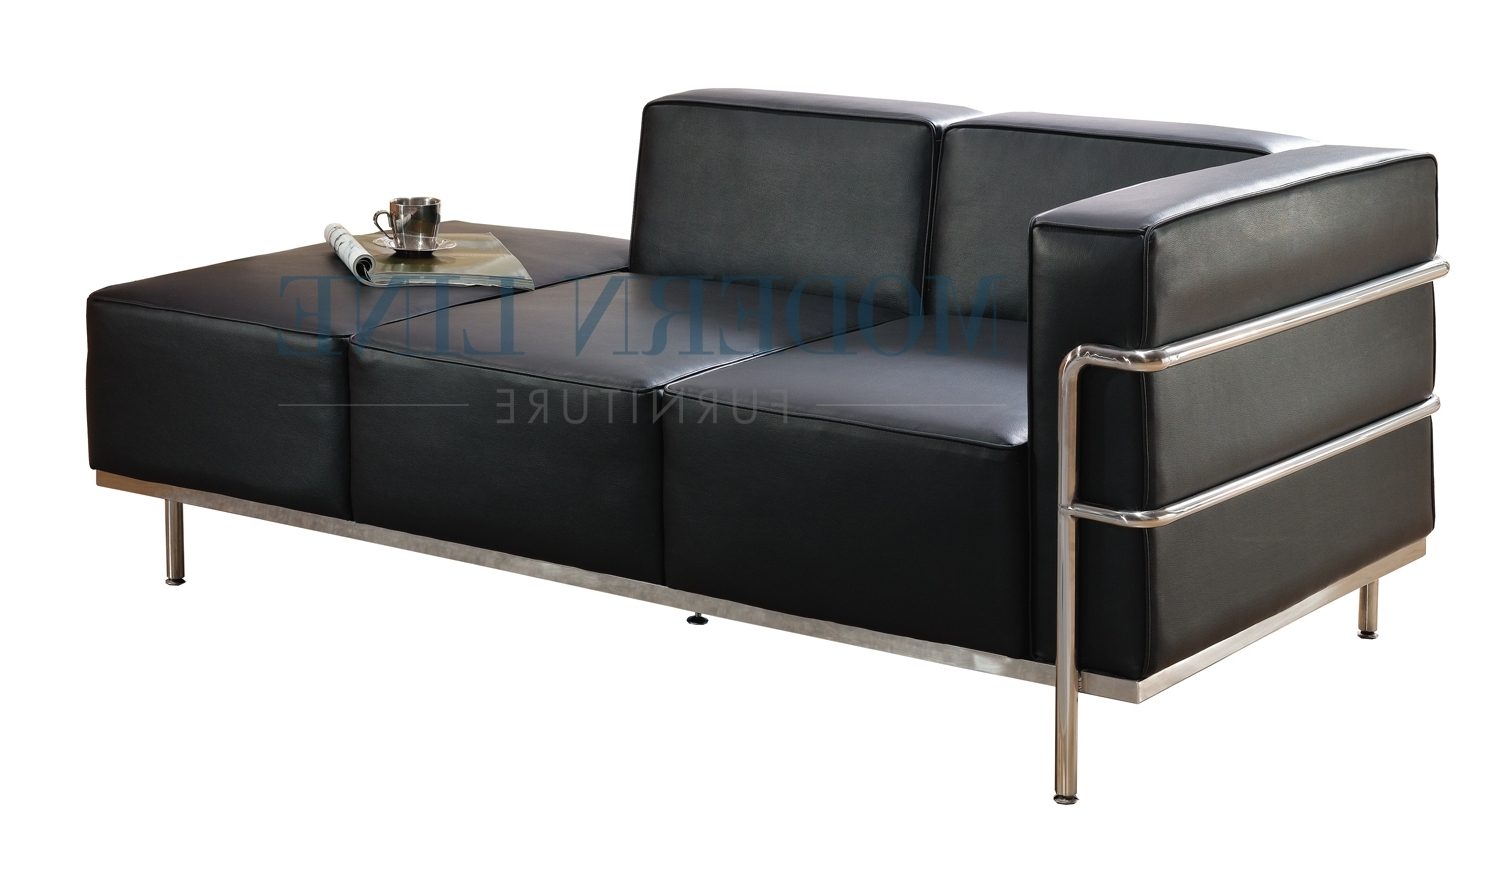 Well Known Black Leather Chaises Regarding Furniture: Elegant Black Leather Chaise For Living Room (View 4 of 15)